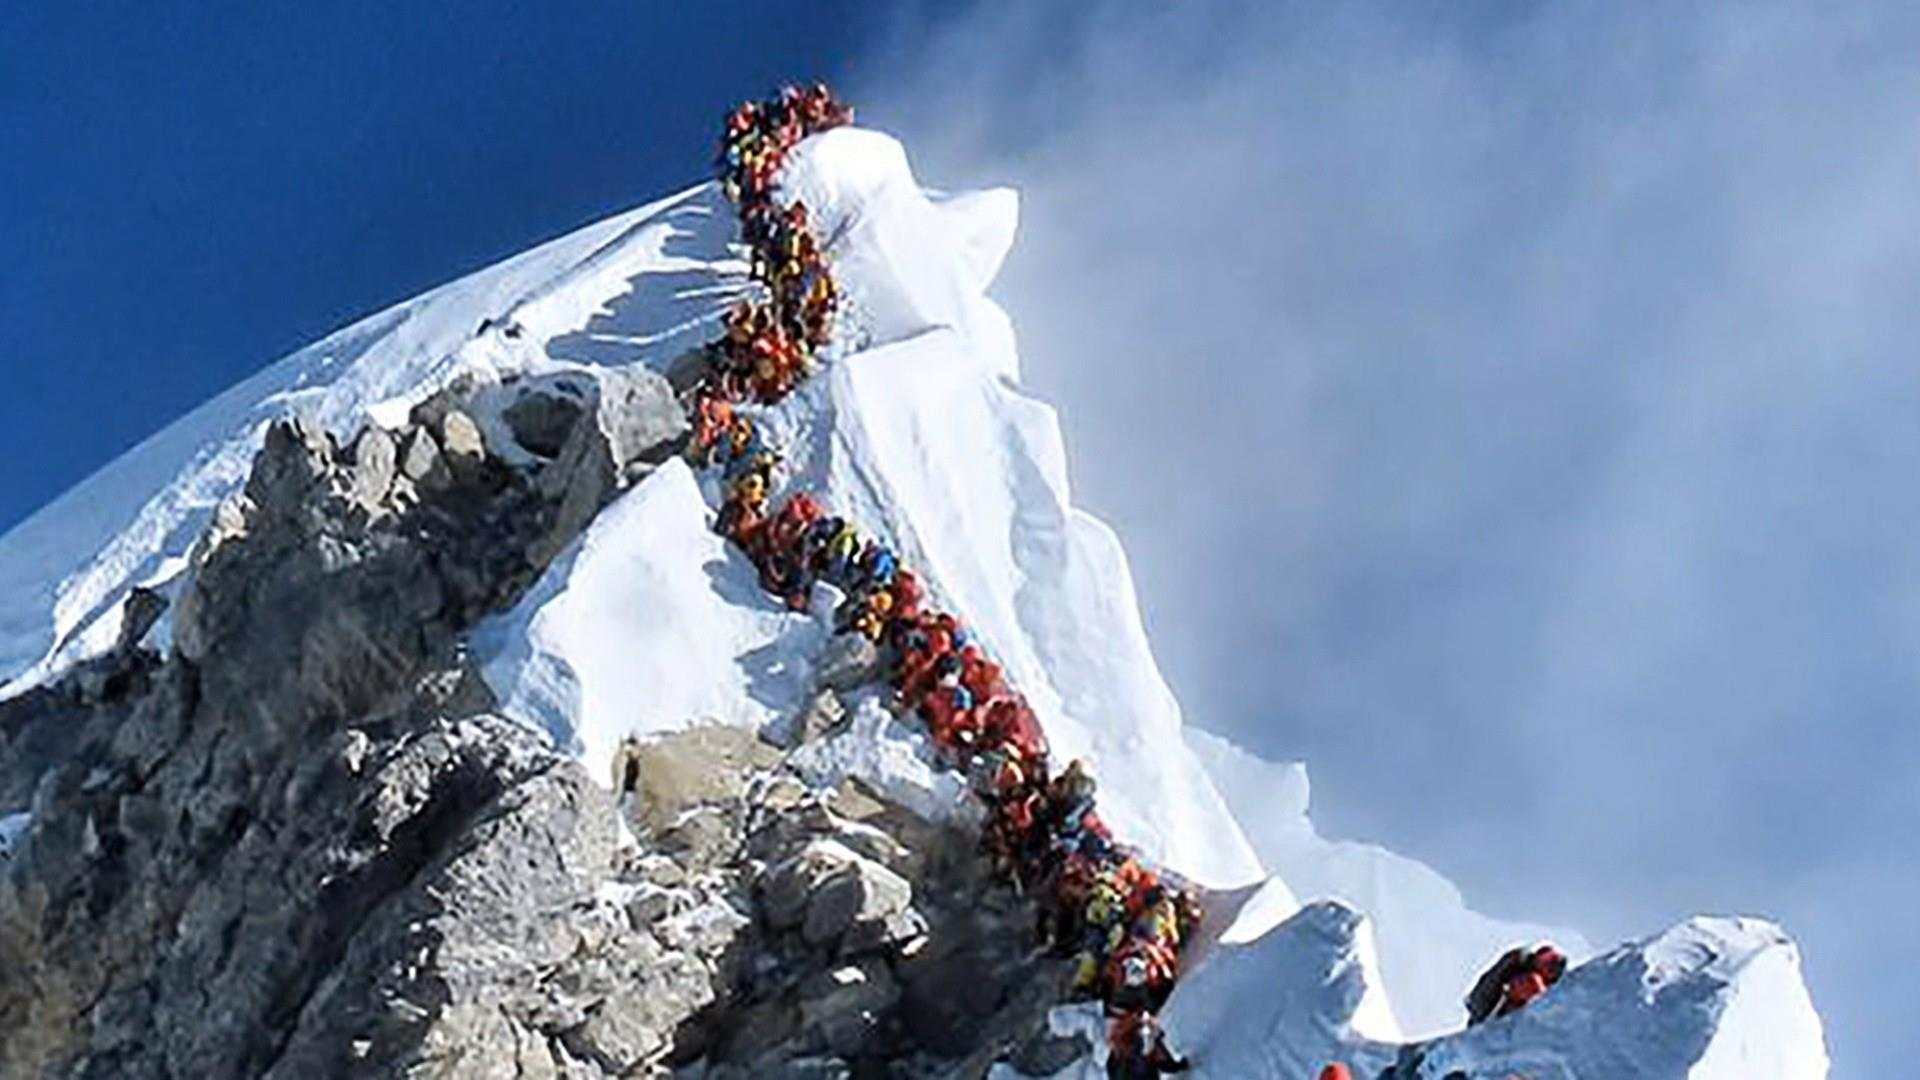 Safety concerns increase due to overcrowding at Mount Everest